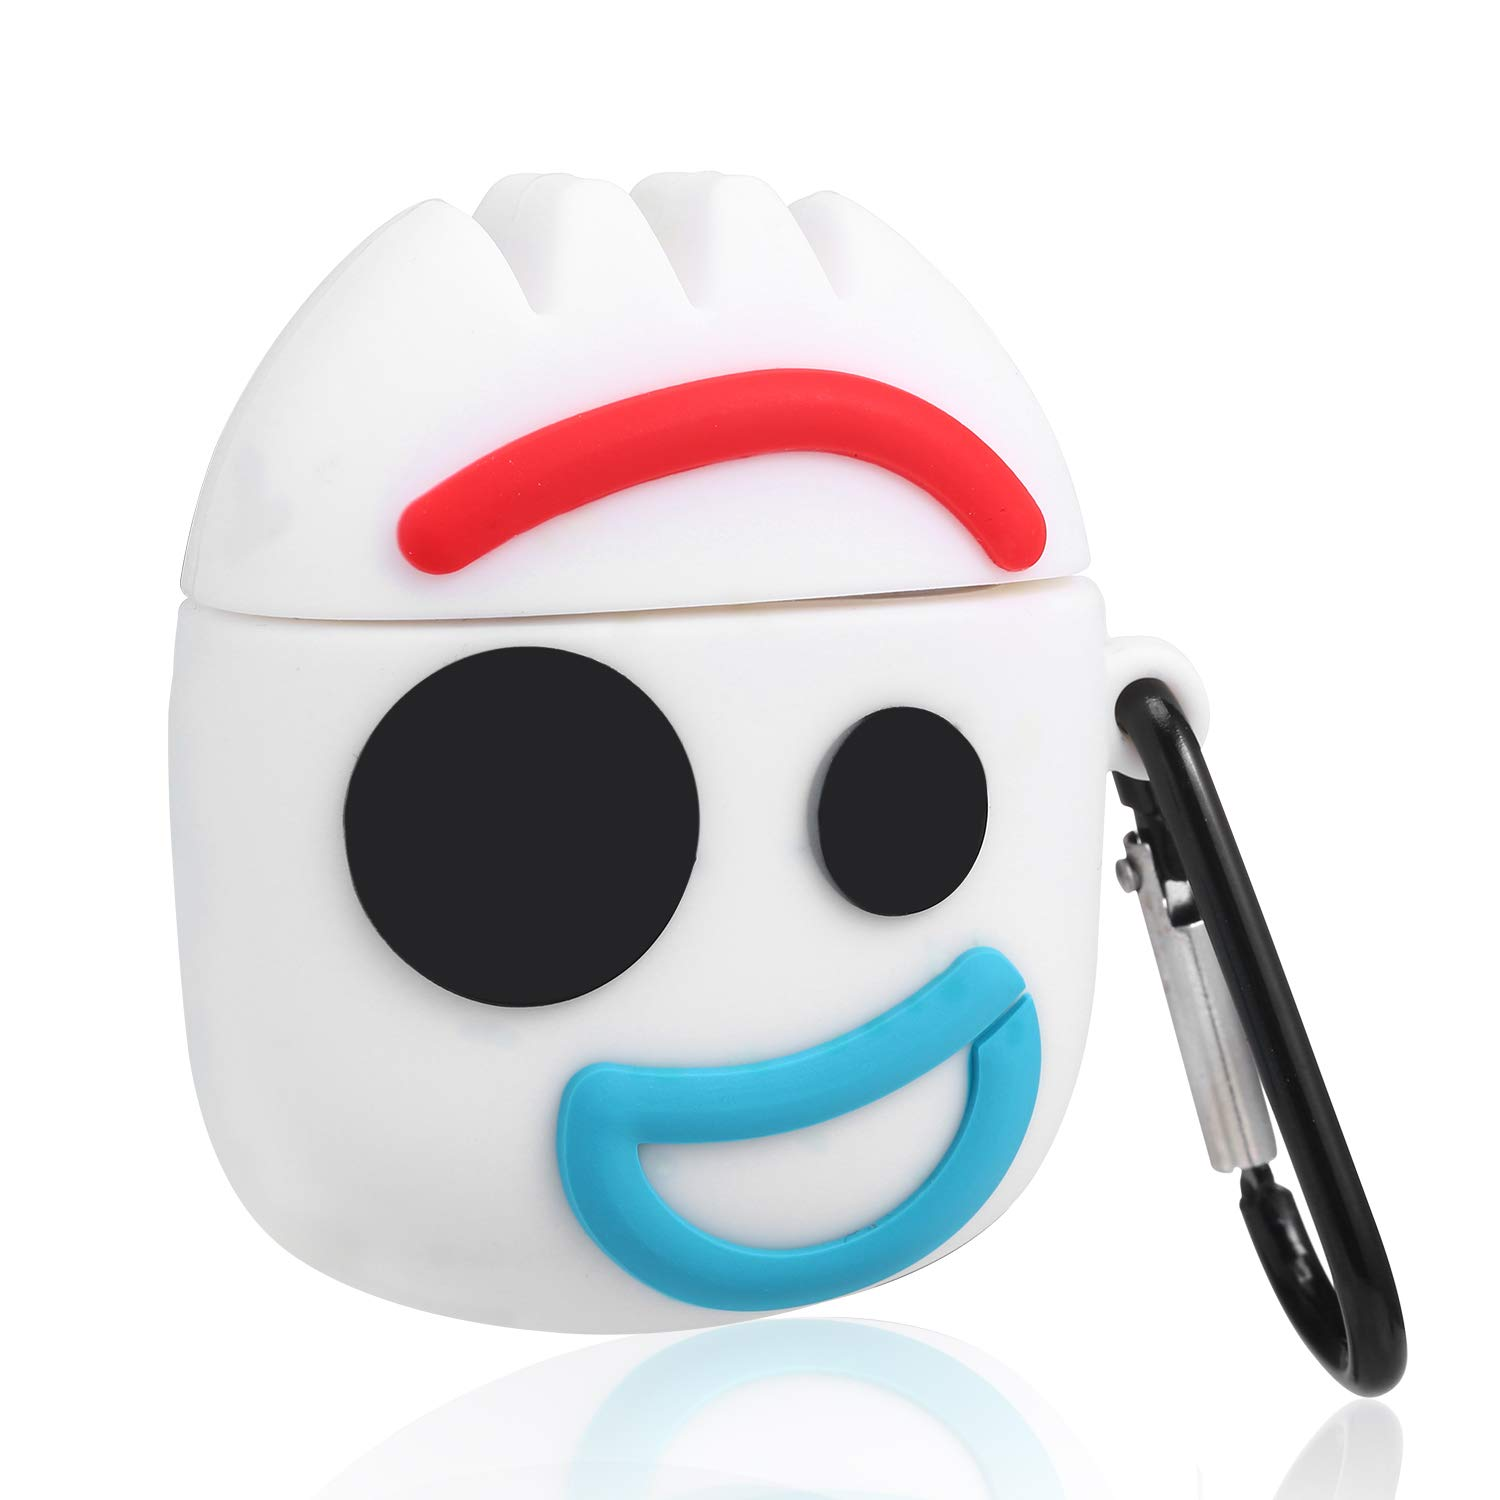 Gift-Hero Mr Fork Cartoon Case for Airpods, Funny Cute Pattern Design for Girls Boys Kids, Accessories Anti-Lost Carabiner Protective Fun Fashion Character Skin Soft Silicone Cover for Air pods 2/1